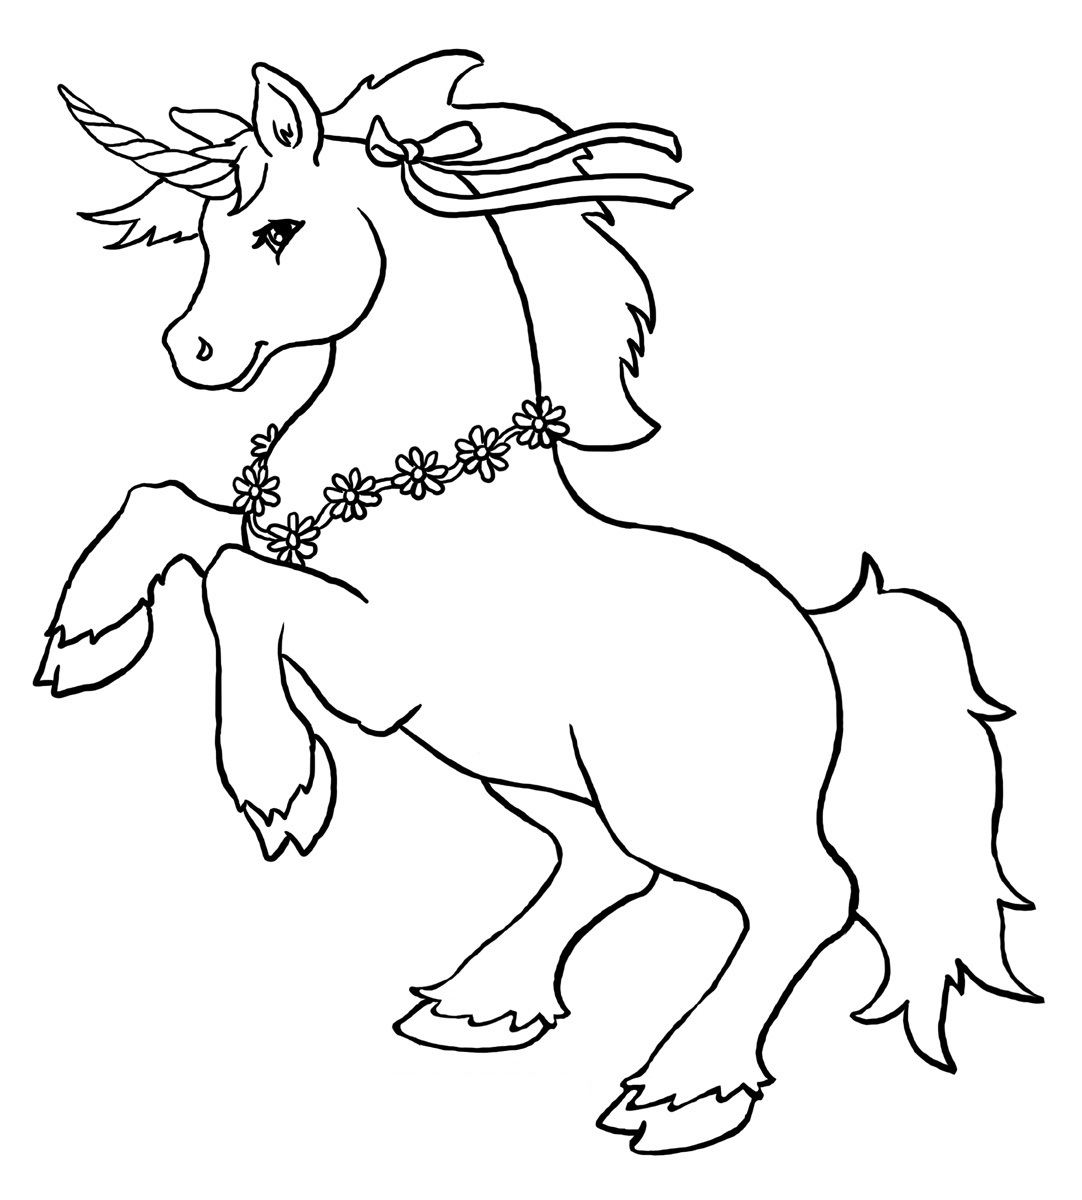 Magical unicorn coloring pages - Cute Unicorn Coloring Pages